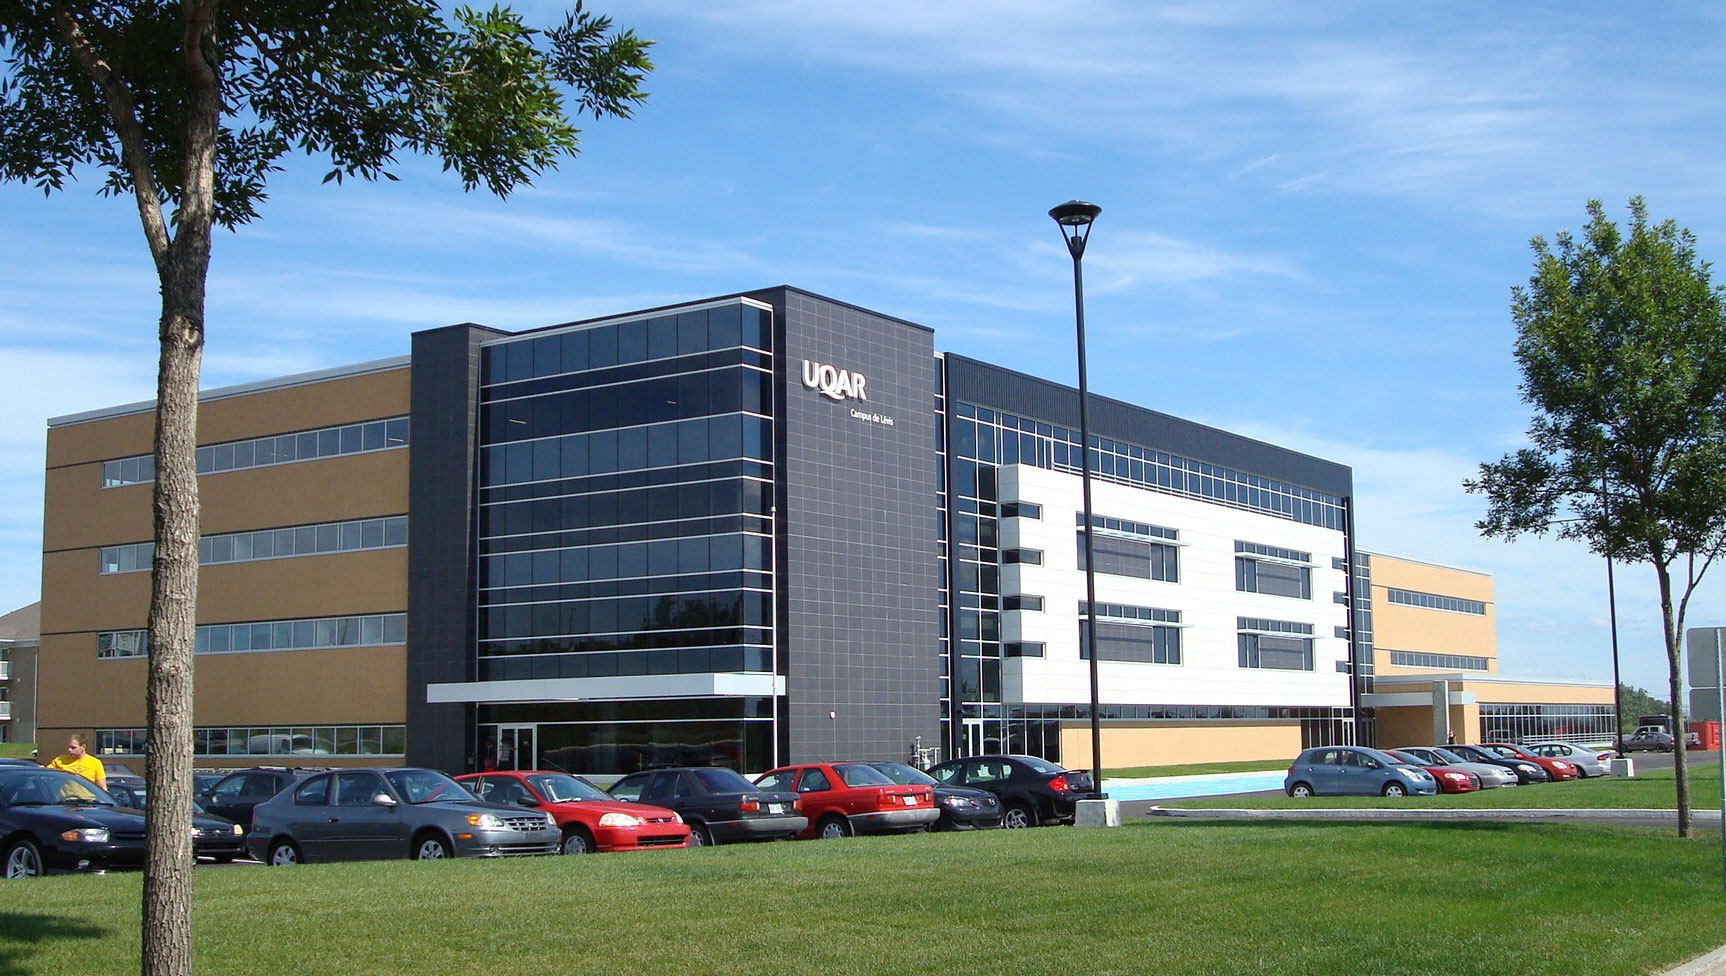 Universite du quebec a rimouski for Piscine universite laval